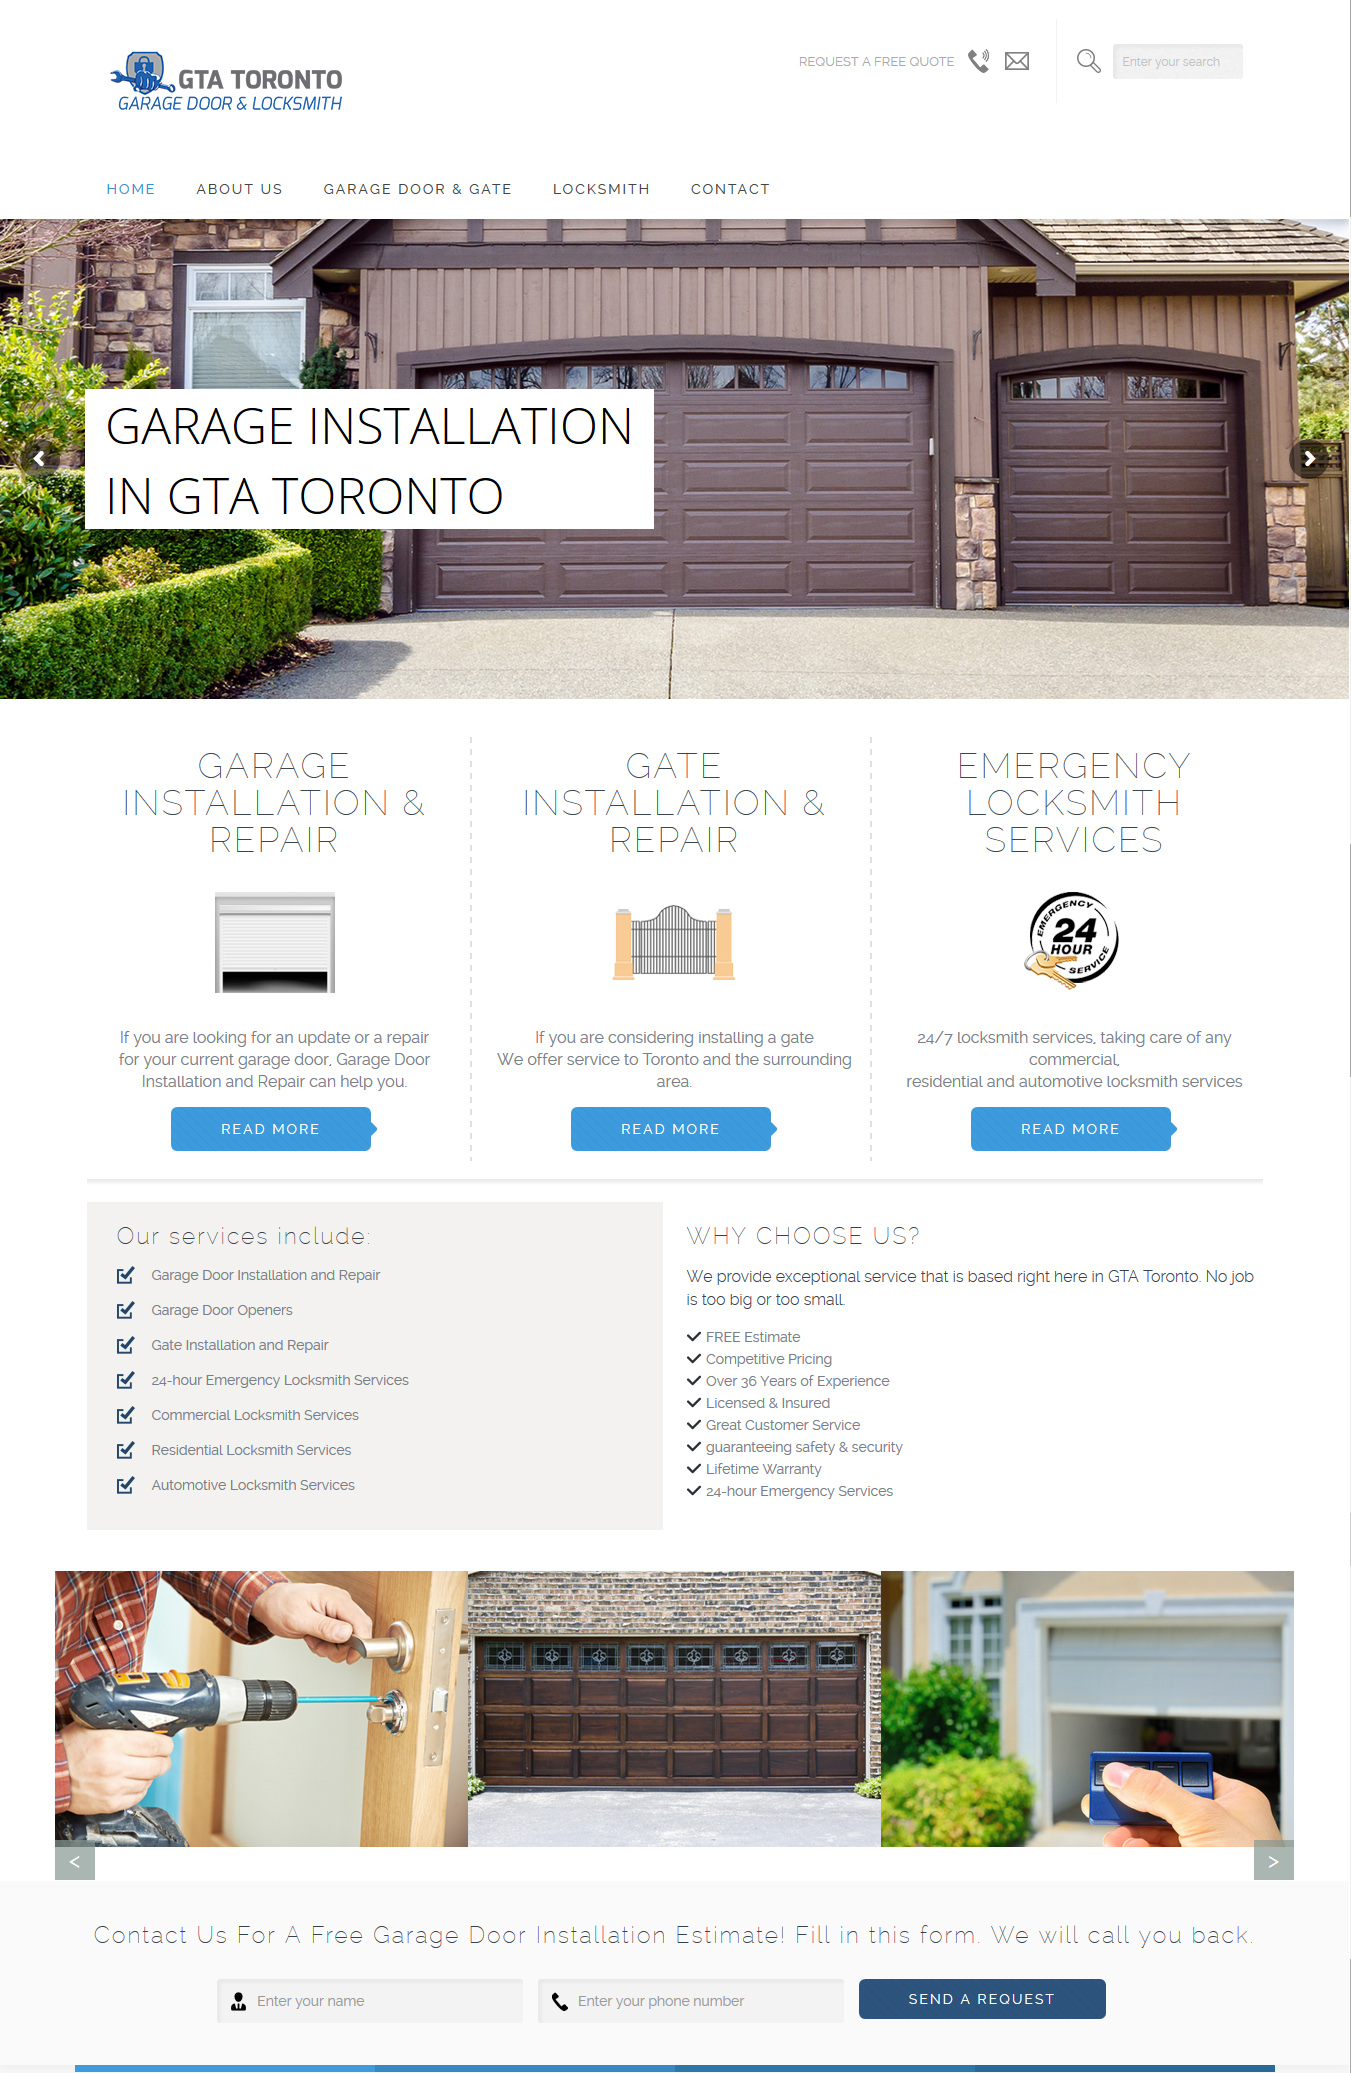 Toronto Garage Door And Locksmith Hanidesign WebampGraphic